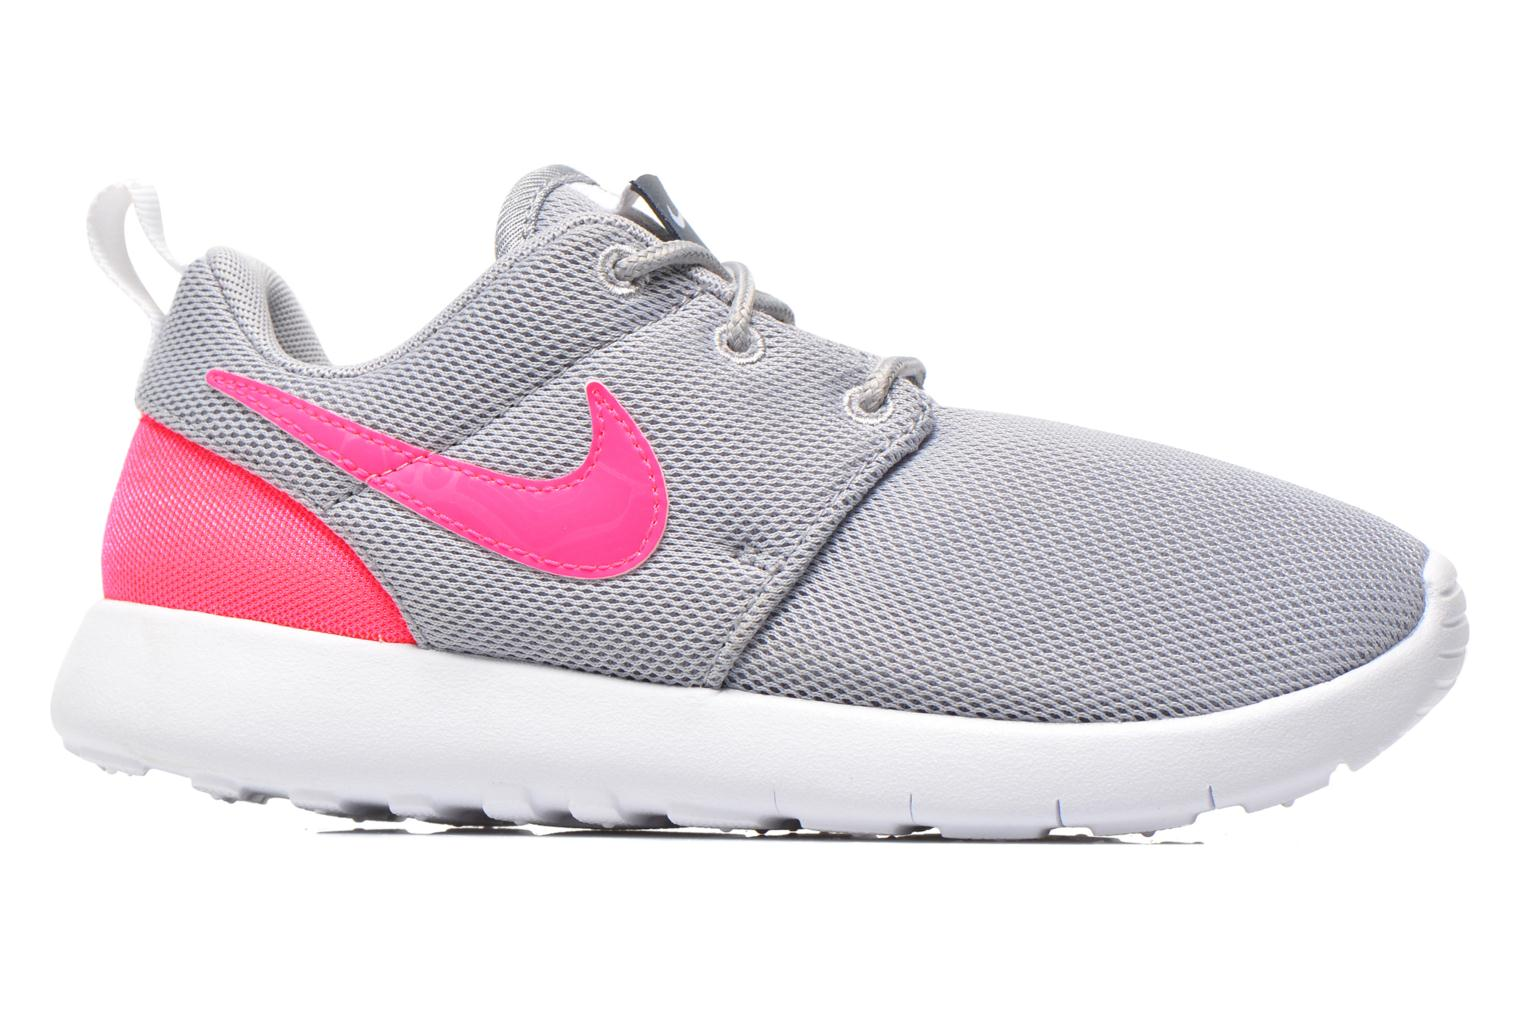 Wolf Grey/Hypr Pink-Cl Gry-Wht Nike Roshe One (Ps) (Gris)